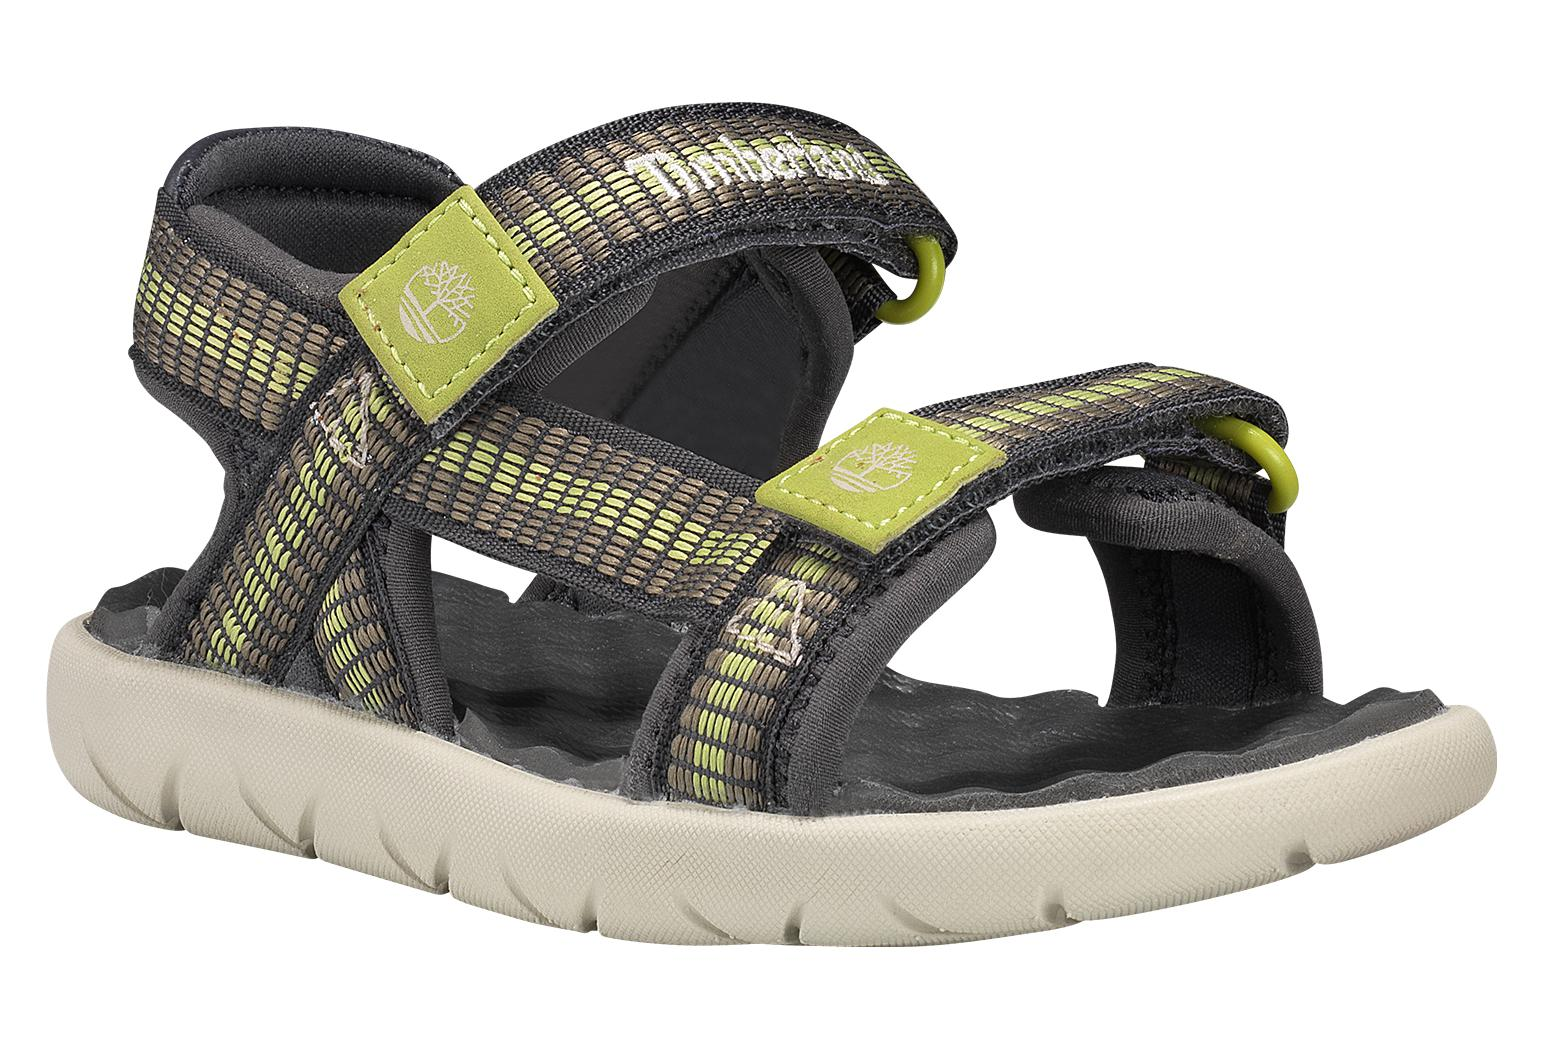 lowest price outlet online classic Timberland Youth Sandals Perkins Row Black / Green